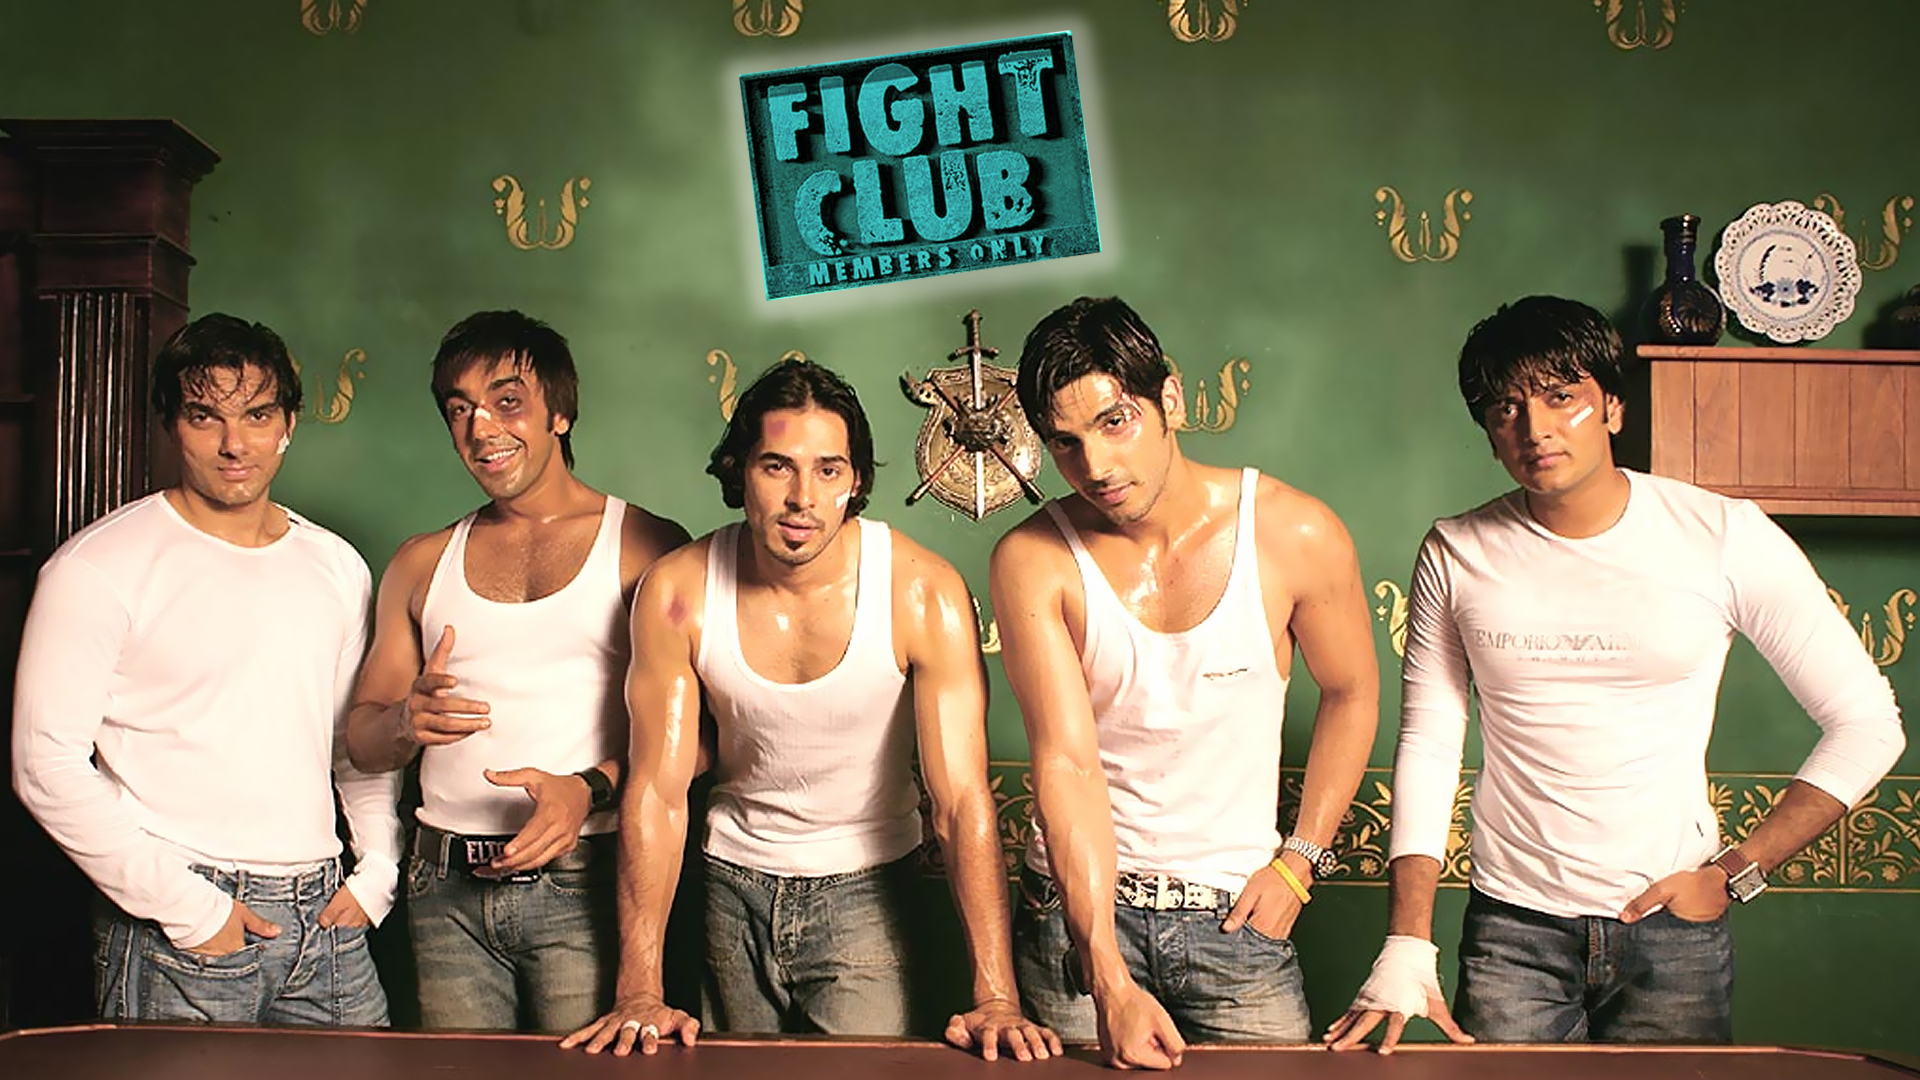 Fight Club: Members Only